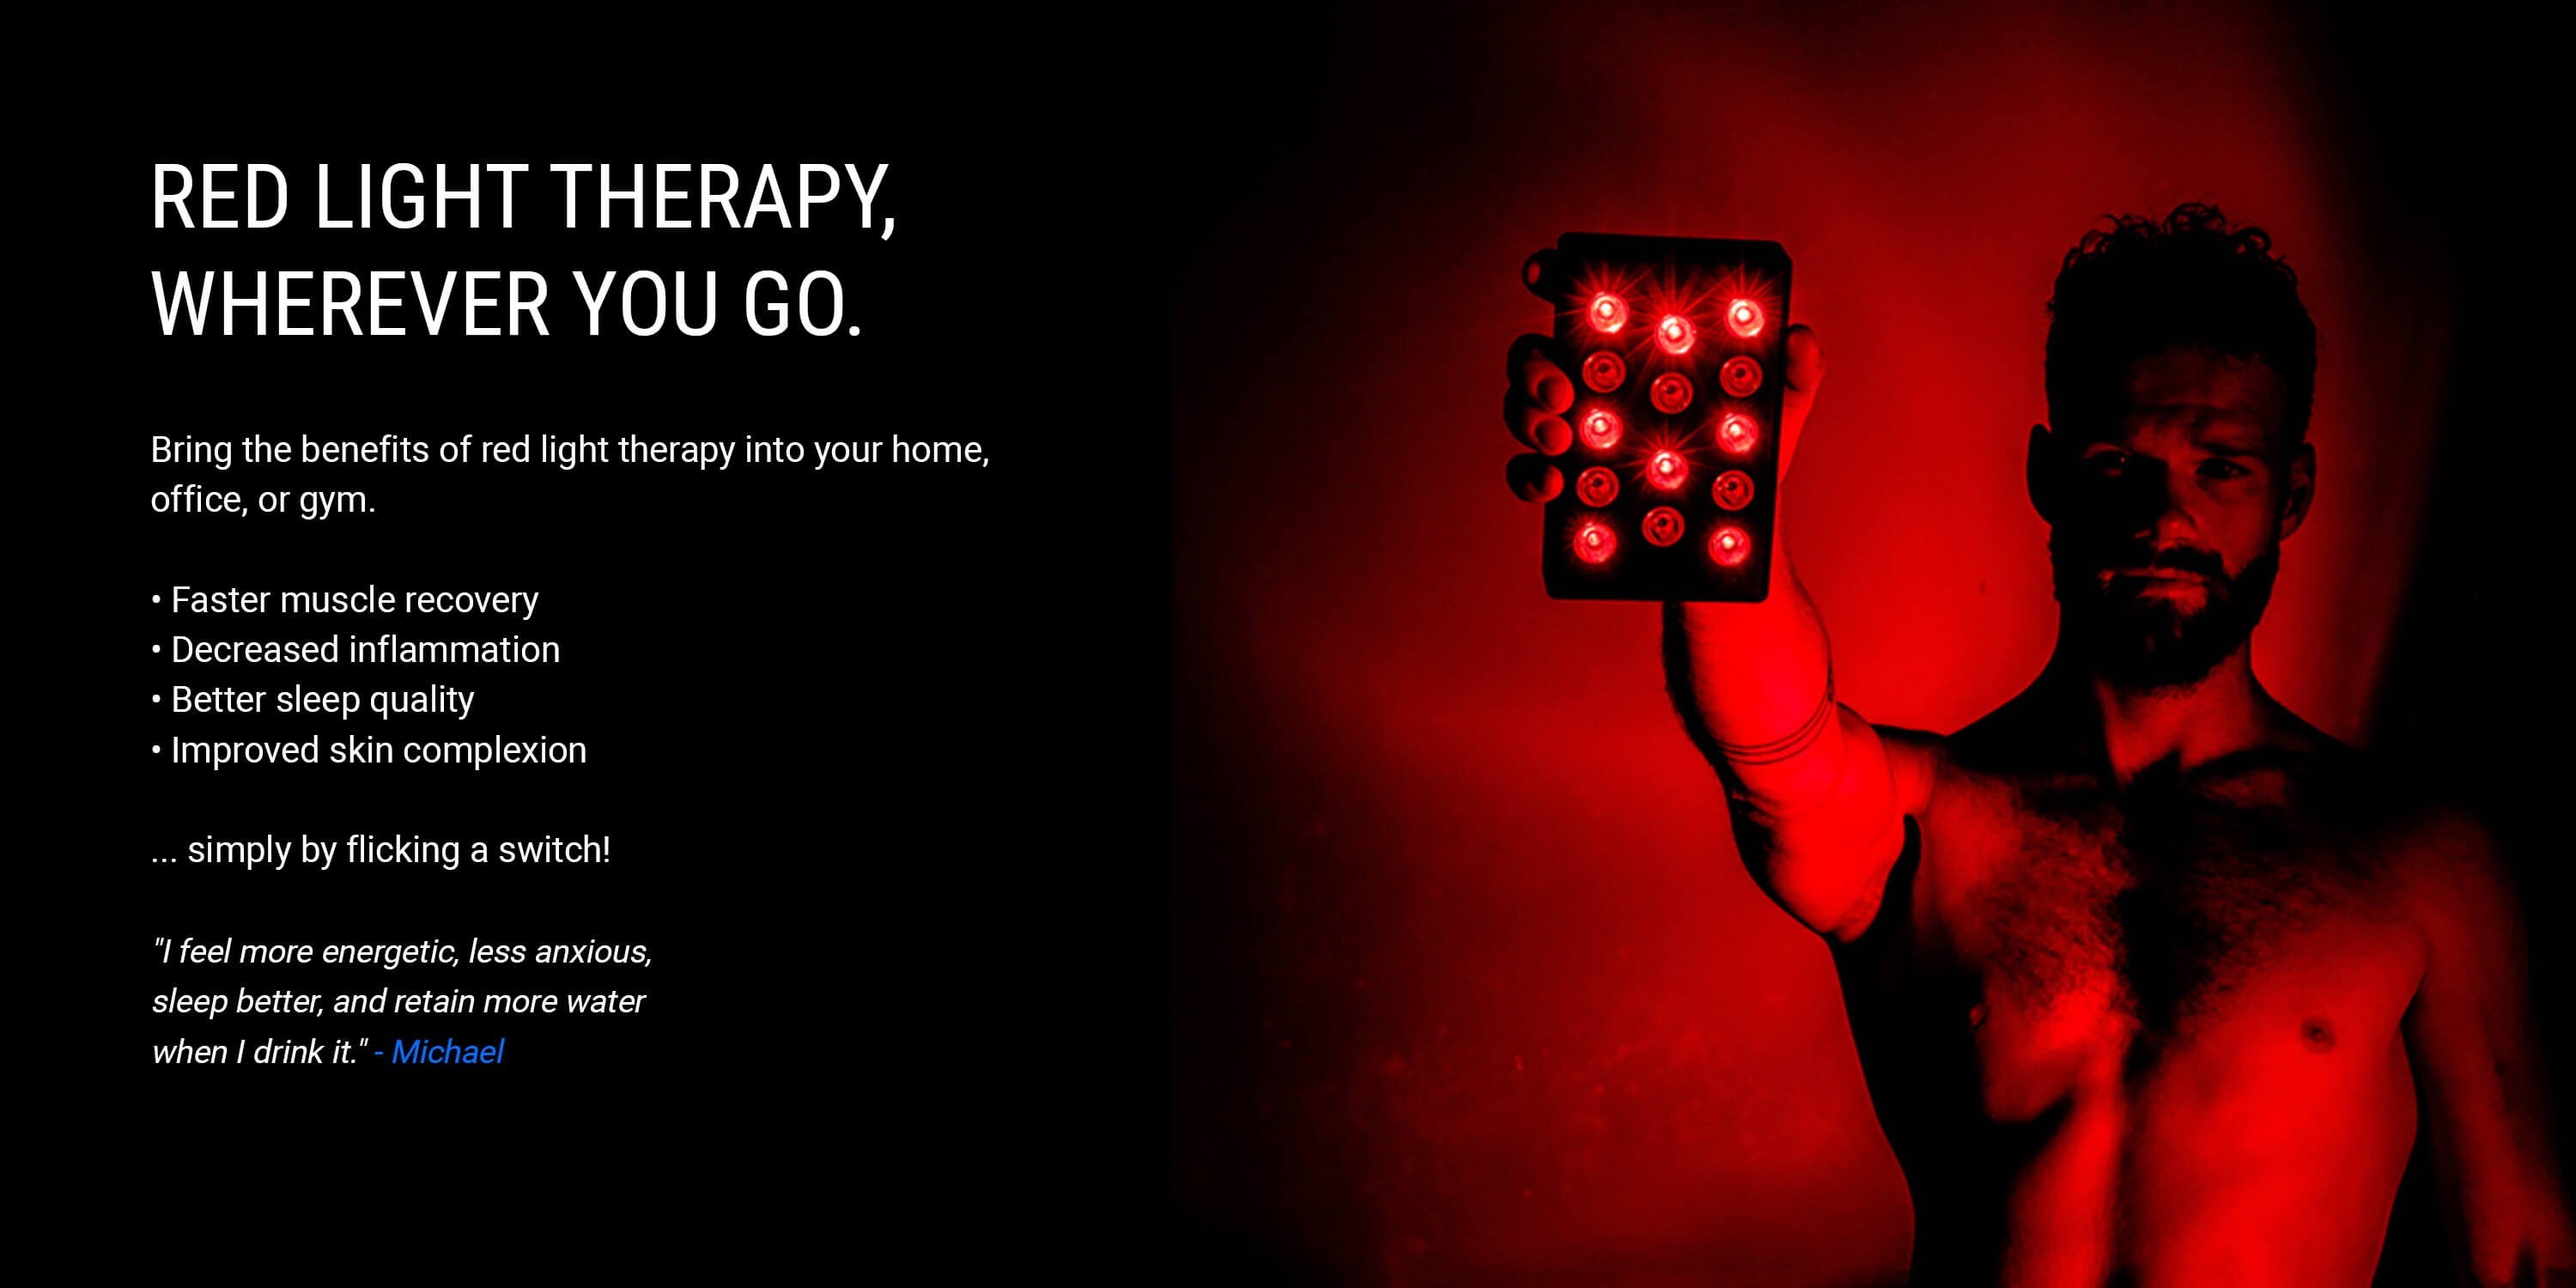 Red light therapy wherever you go